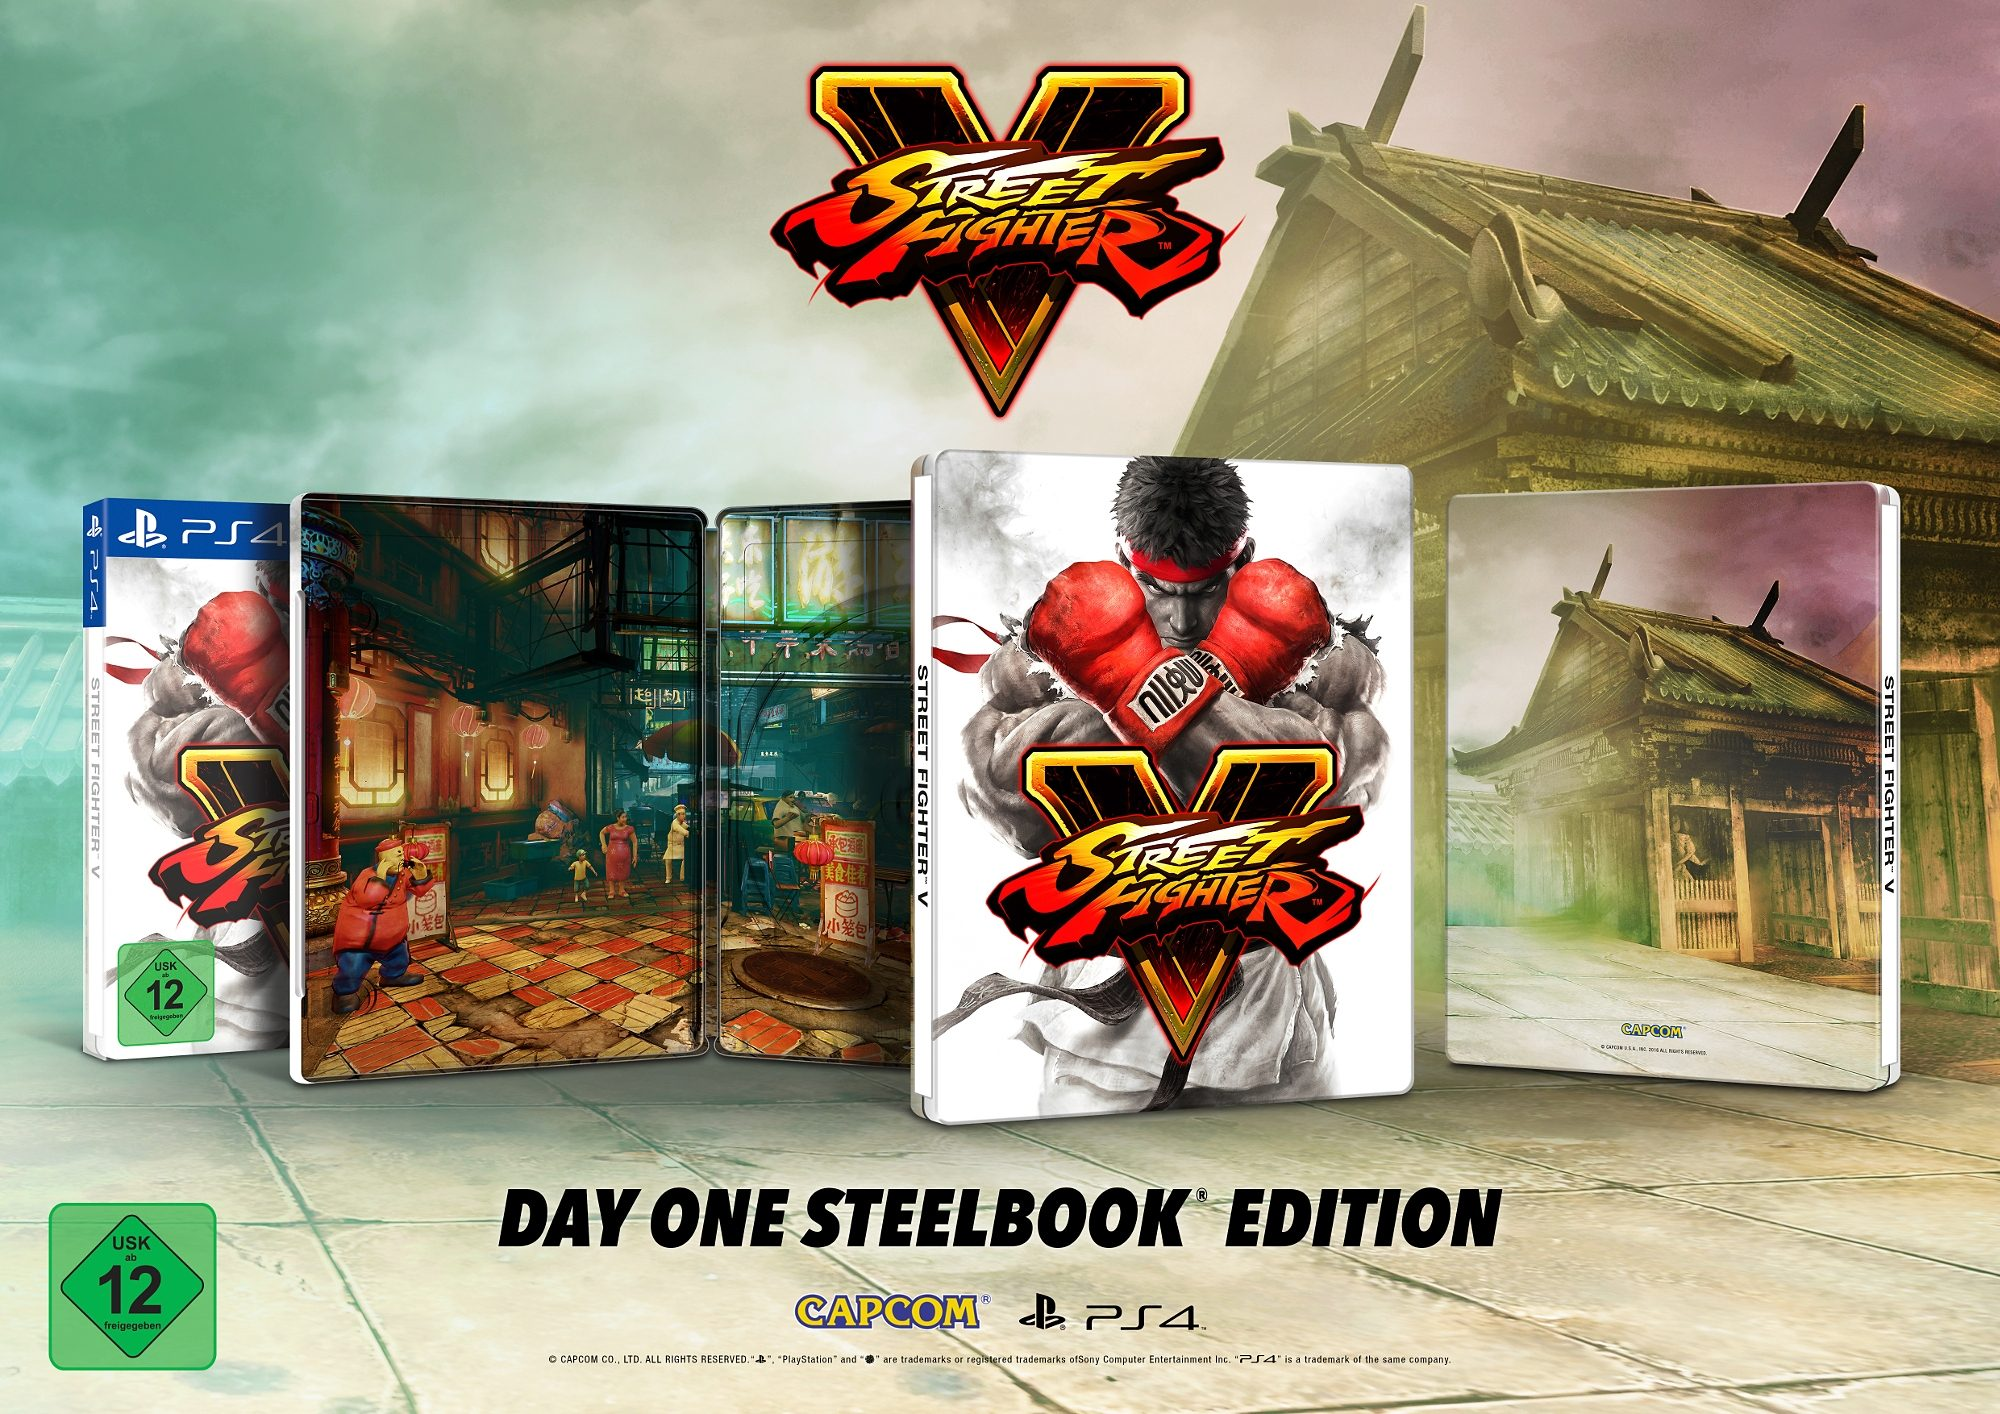 Capcom Street Fighter V Limited Edition Steelbook »(PS4)«